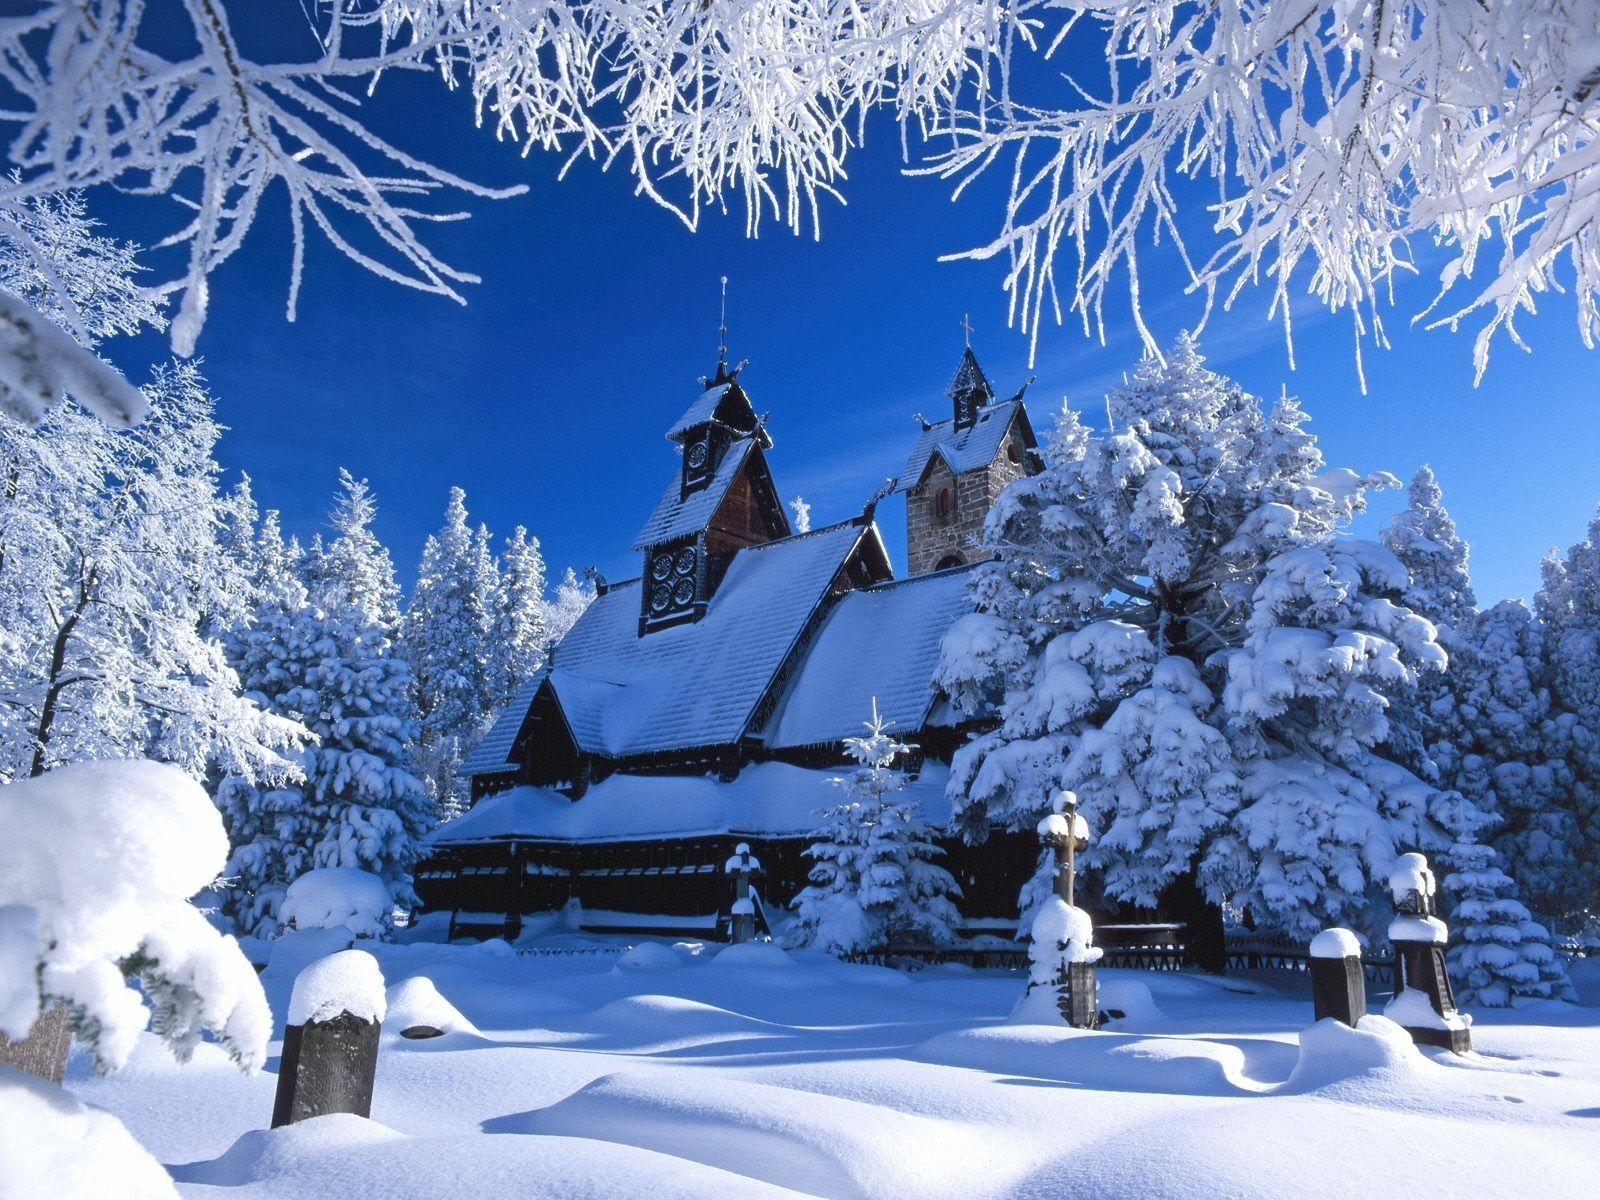 winter time wallpaper cool-#19